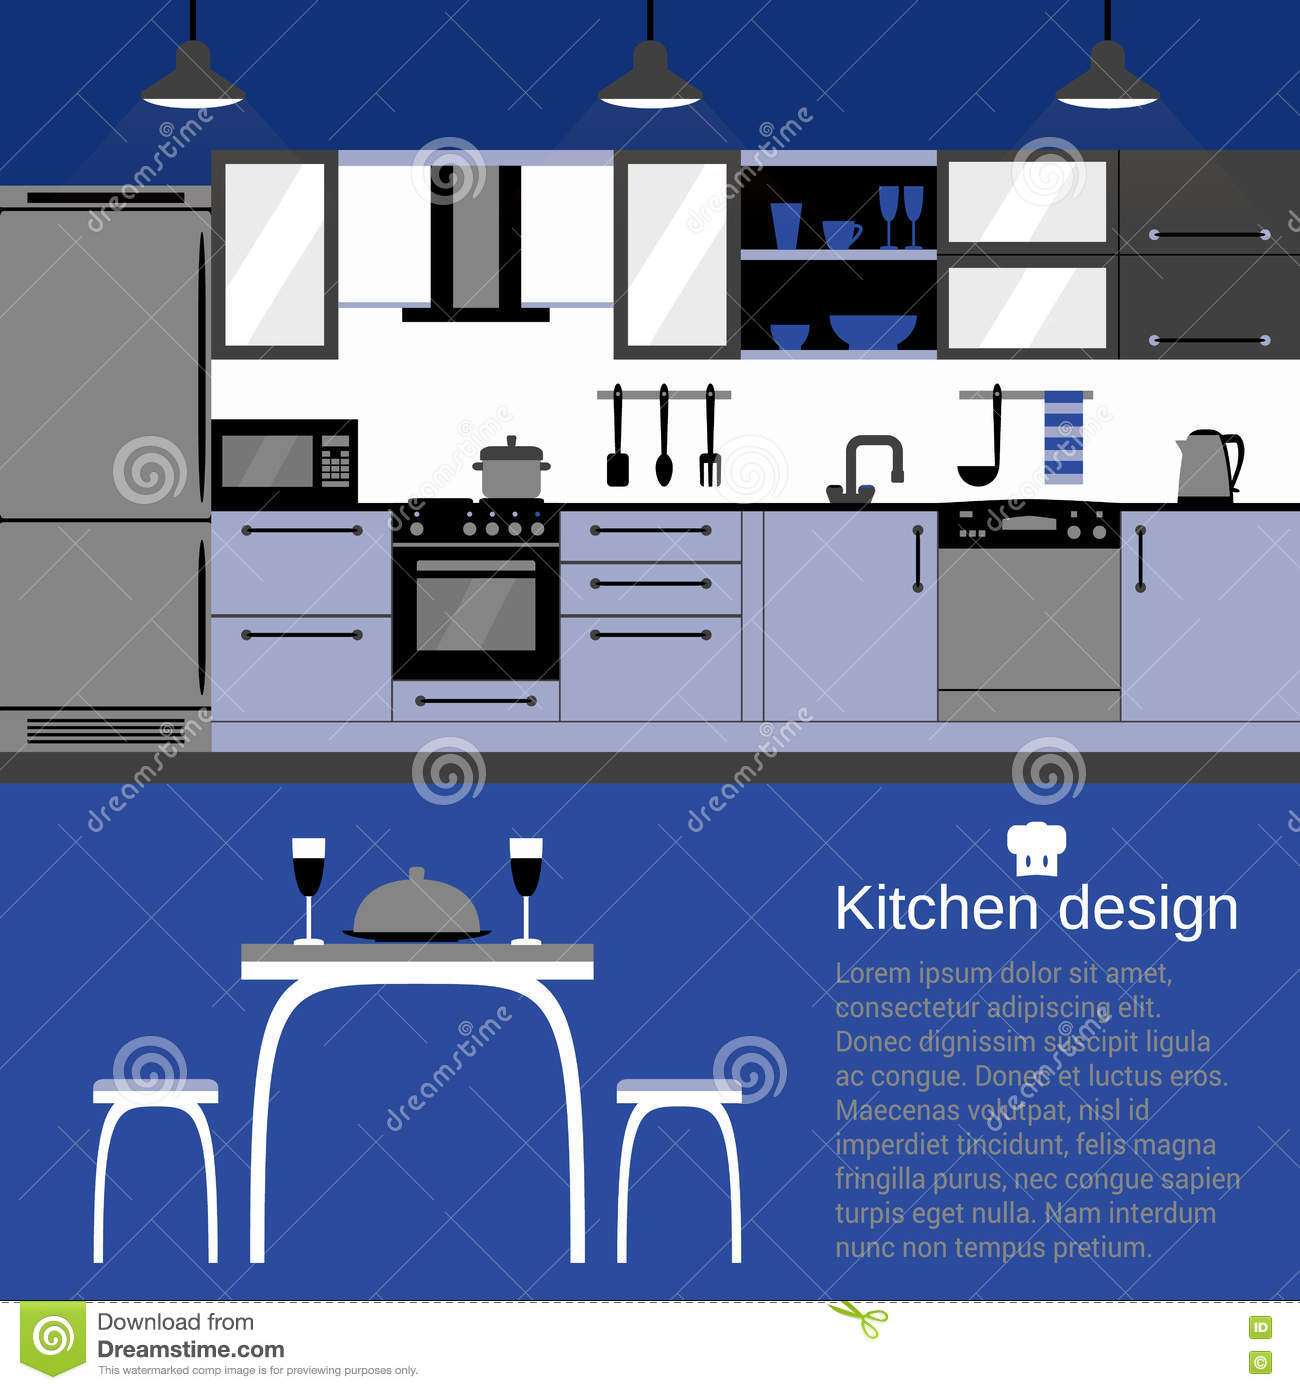 Interior Design For Kitchen For Flats: Modern Kitchen Interior Flat Design With Home Furniture